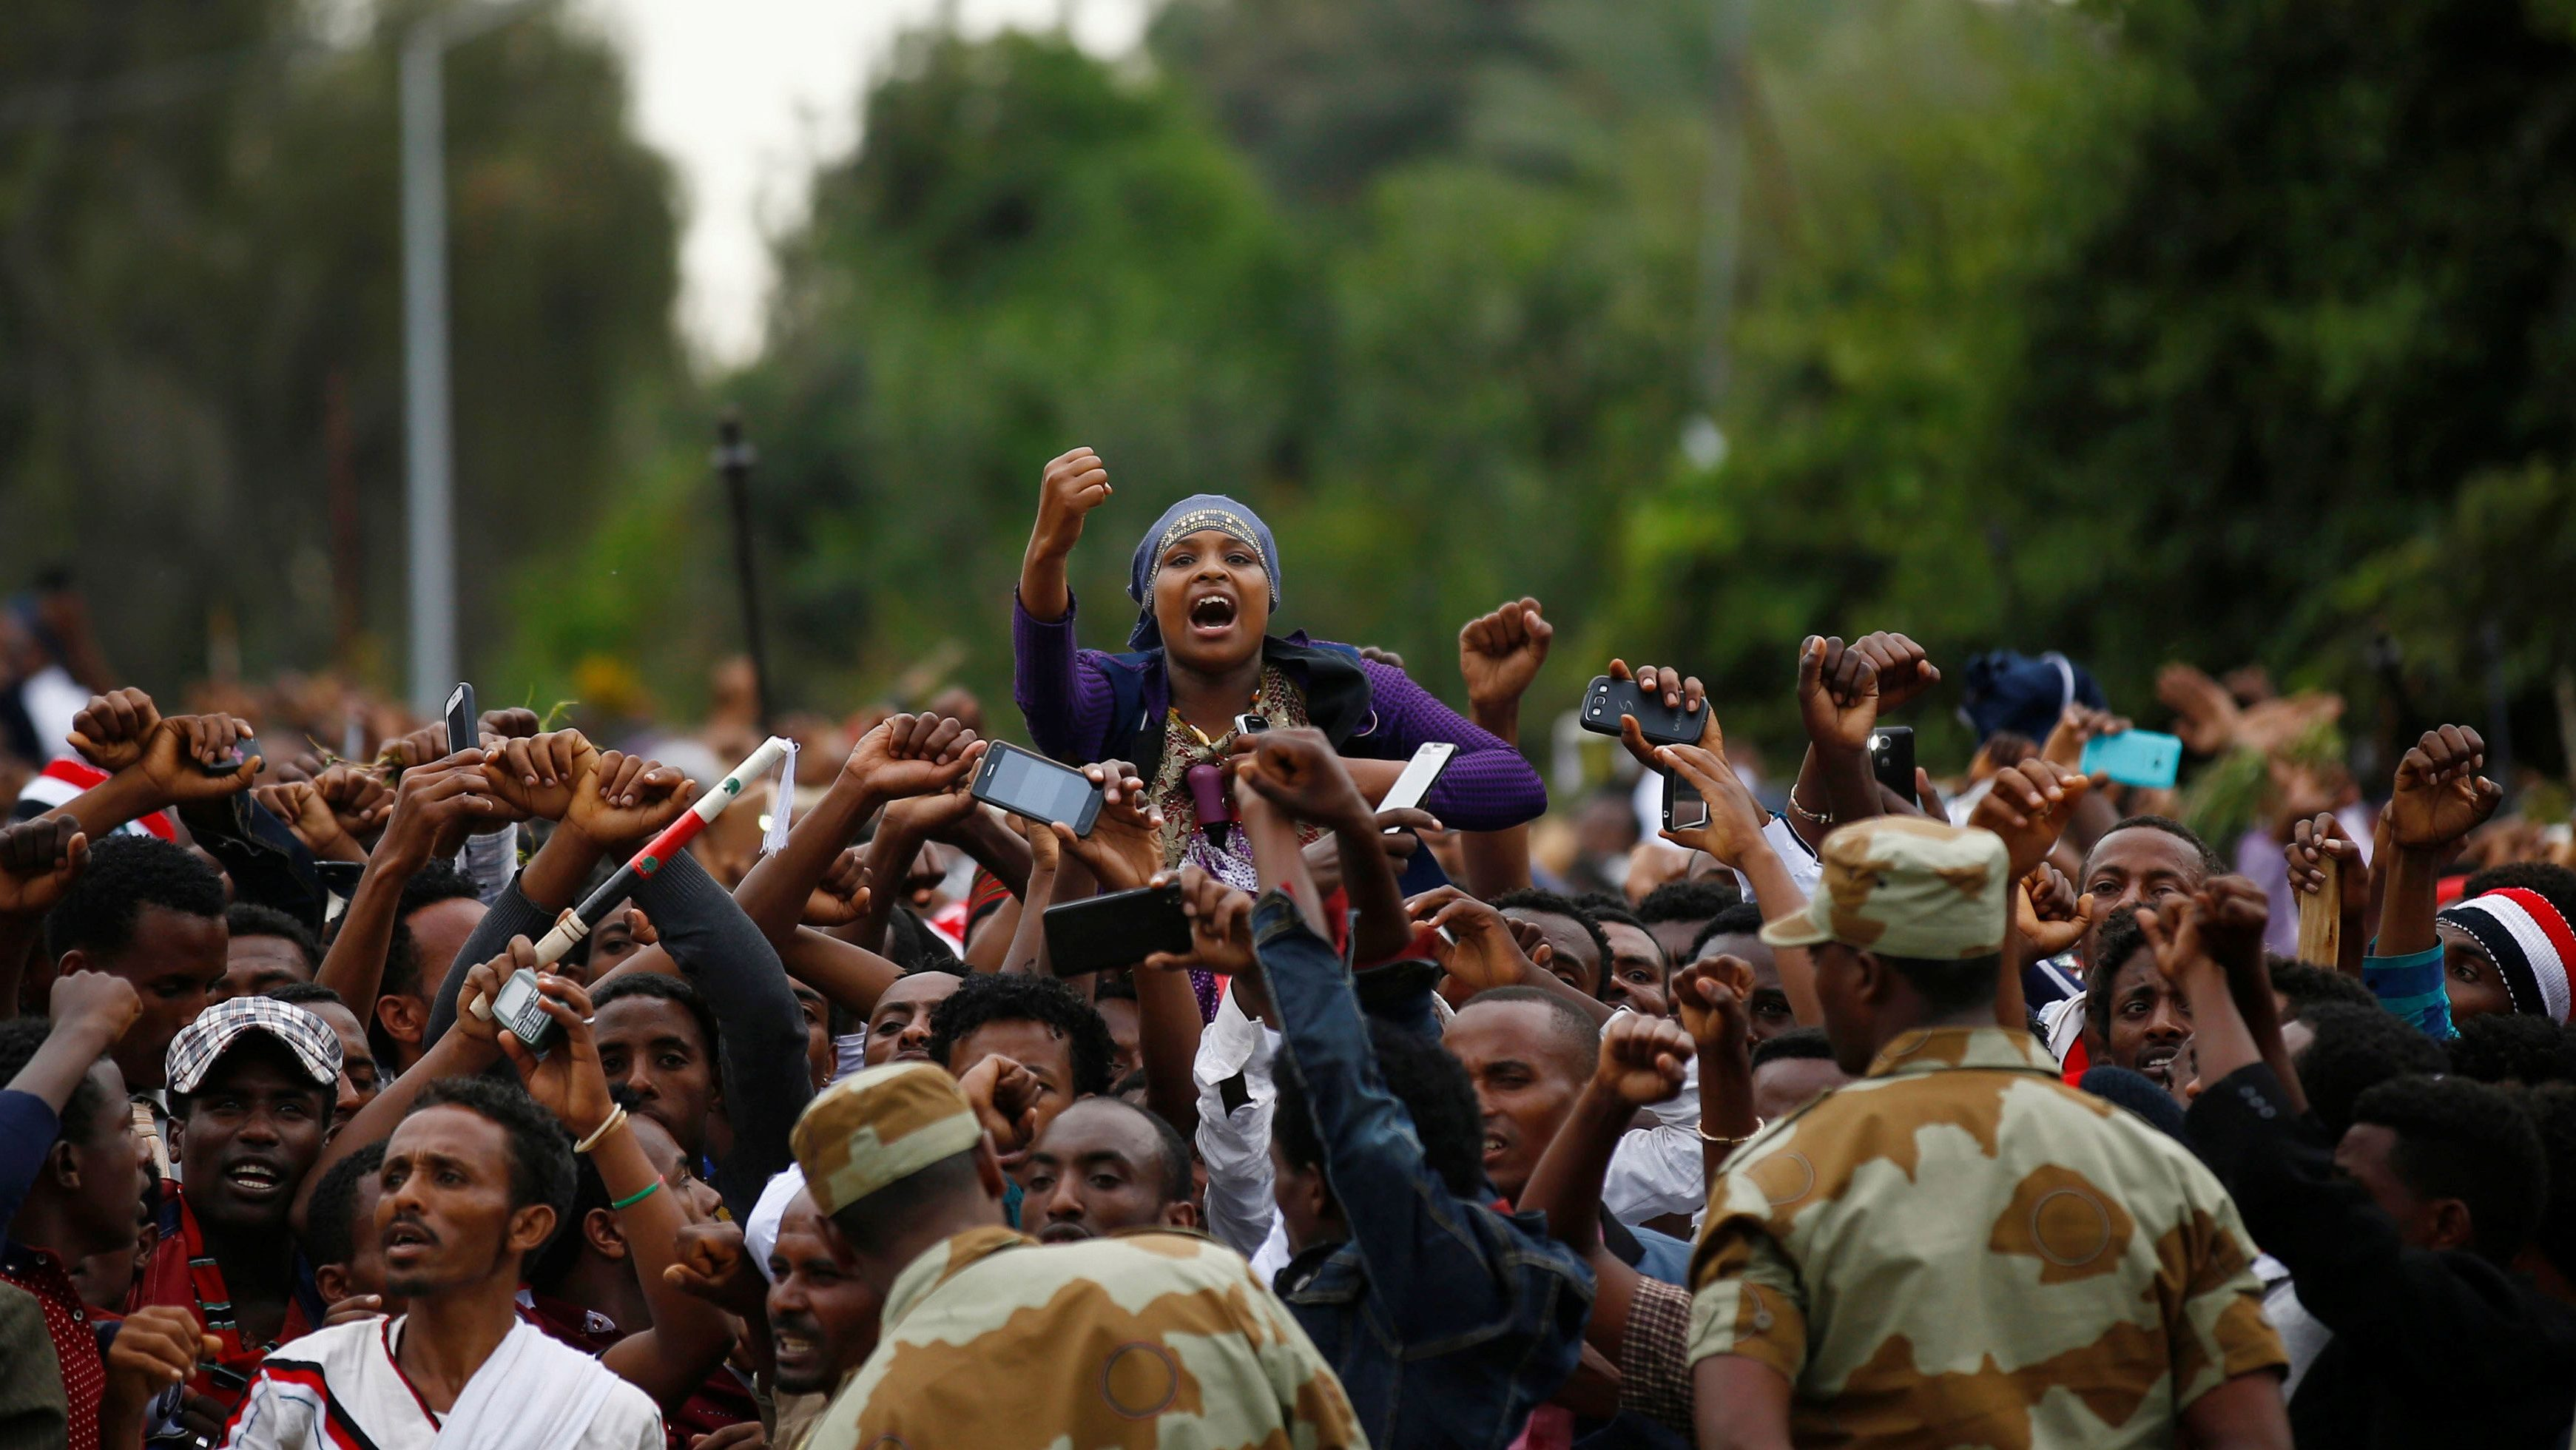 Demonstrators chant slogans while flashing the Oromo protest gesture during Irreecha, the thanksgiving festival of the Oromo people, in Bishoftu town, Oromia region, Ethiopia, October 2, 2016.